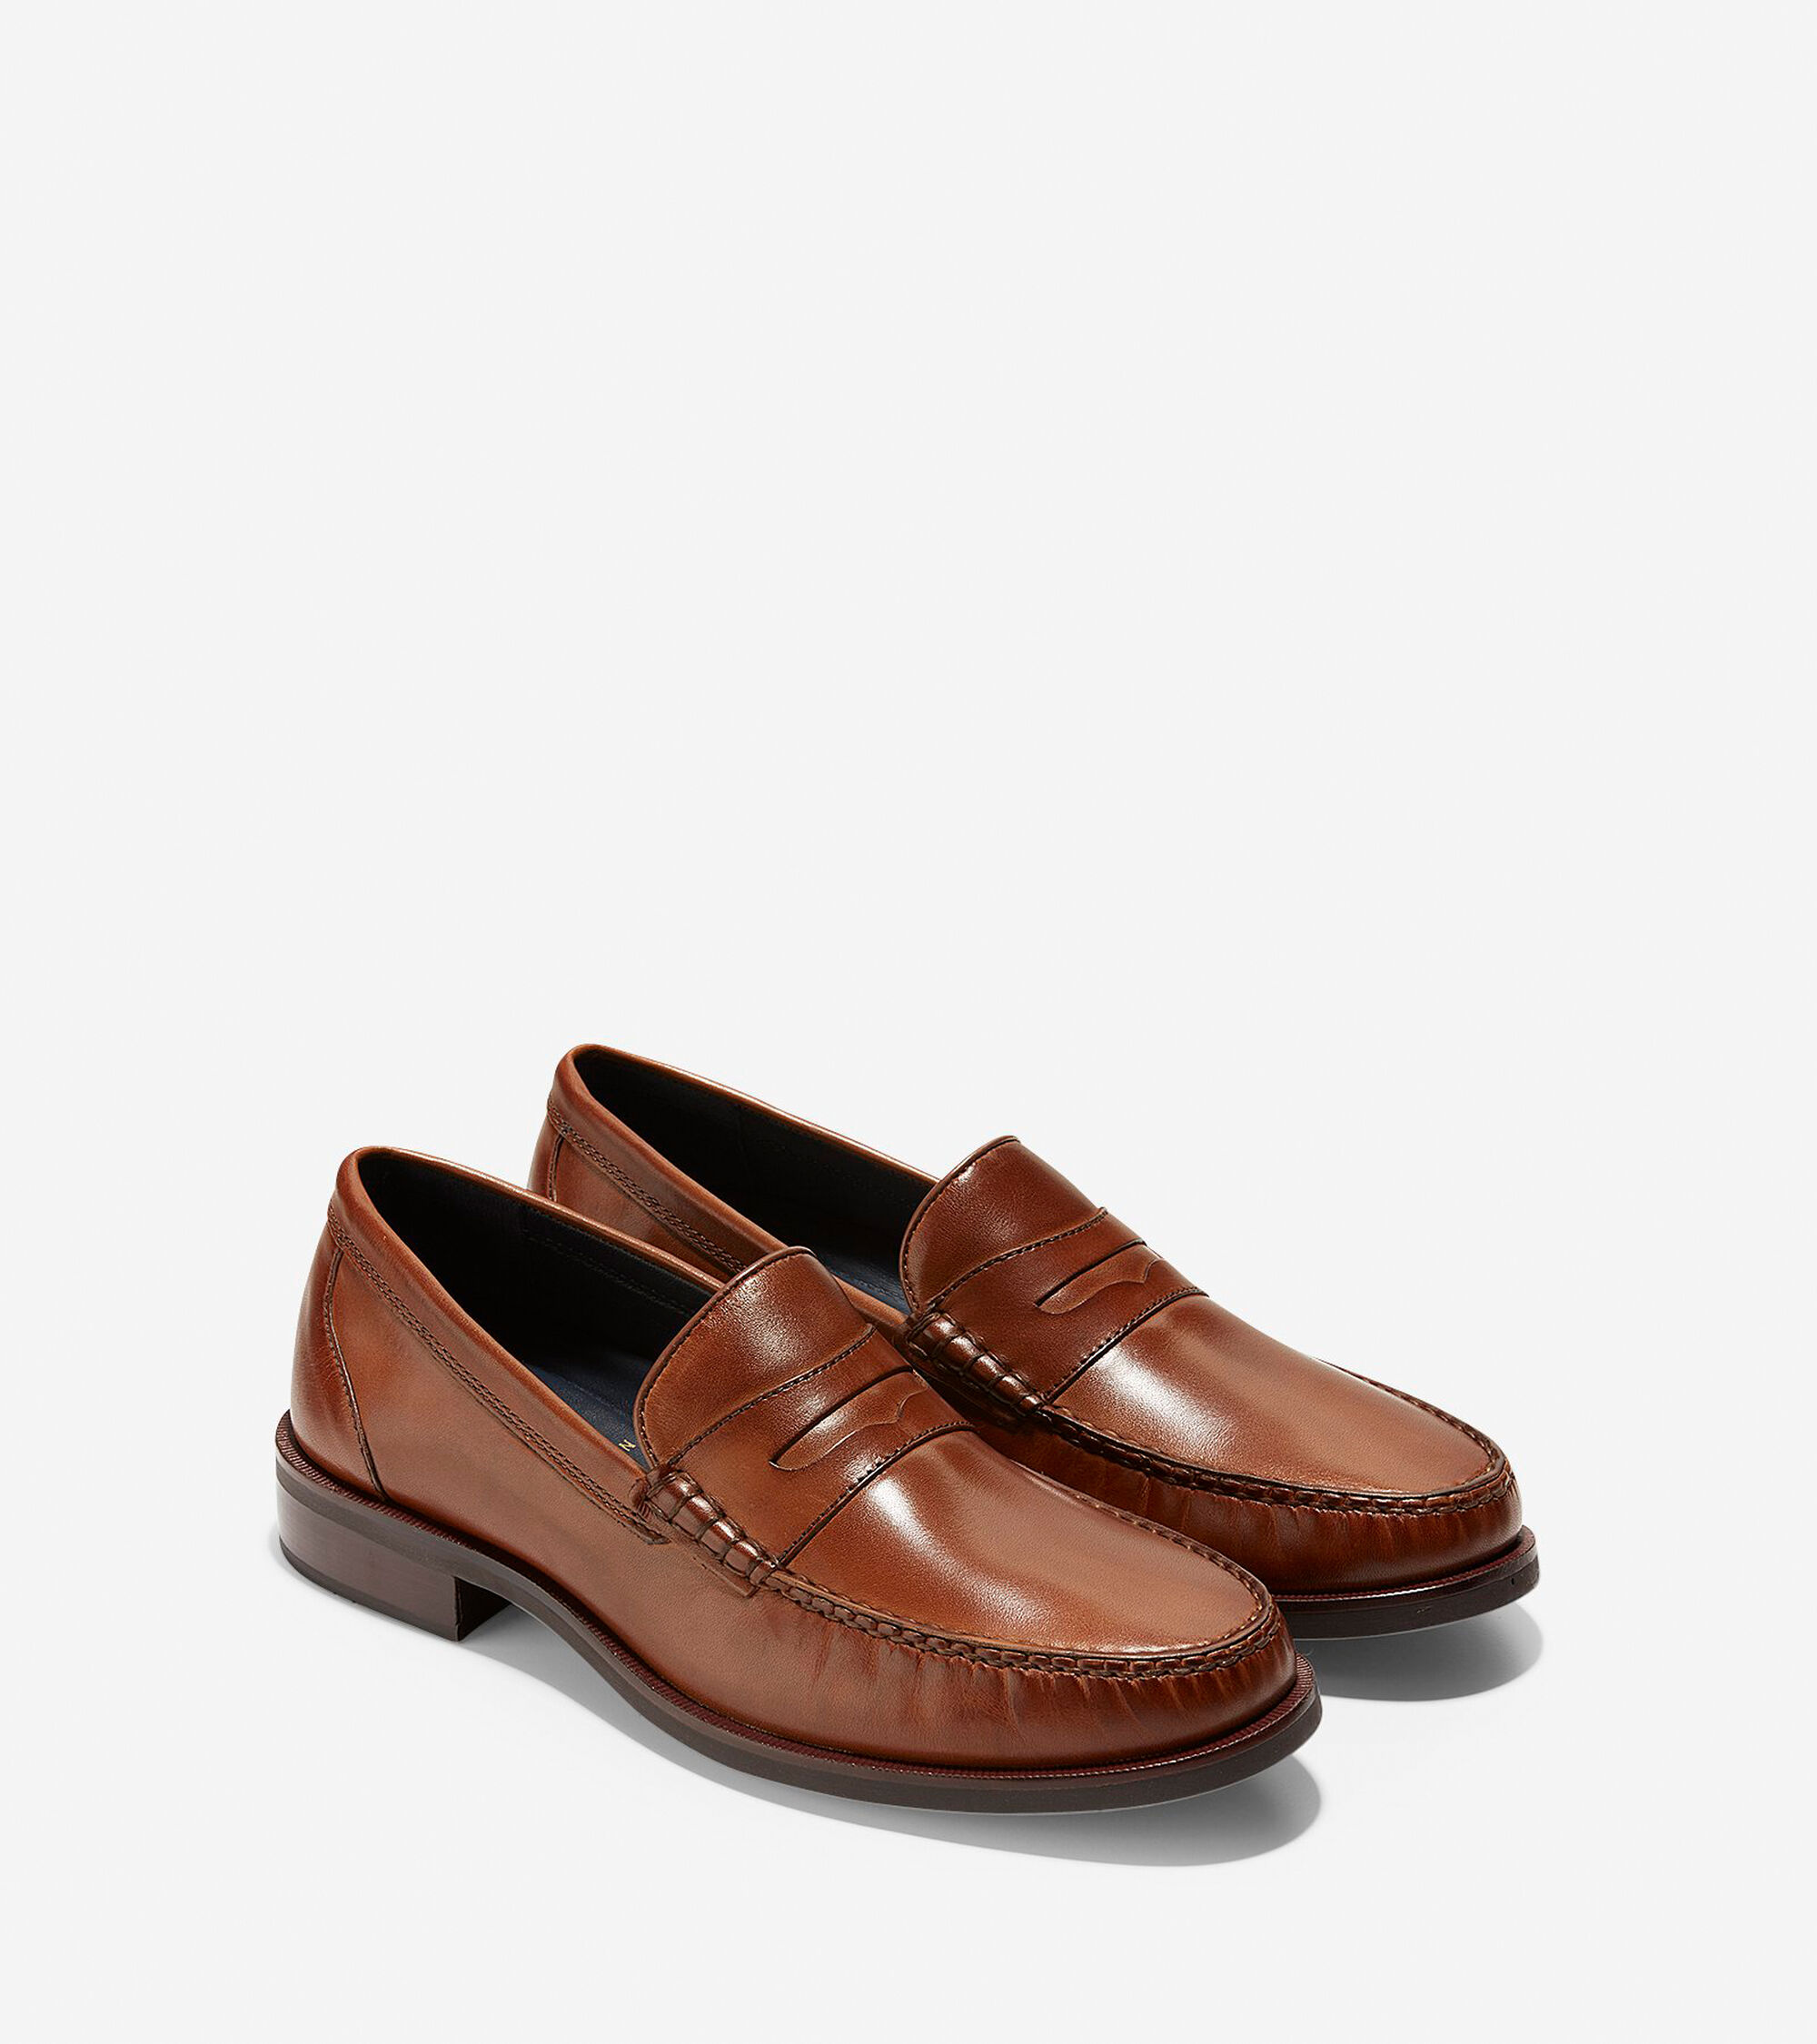 e73723368d0 ... Men s Pinch Sanford Penny Loafer  Men s Pinch Sanford Penny Loafer.   COLEHAAN